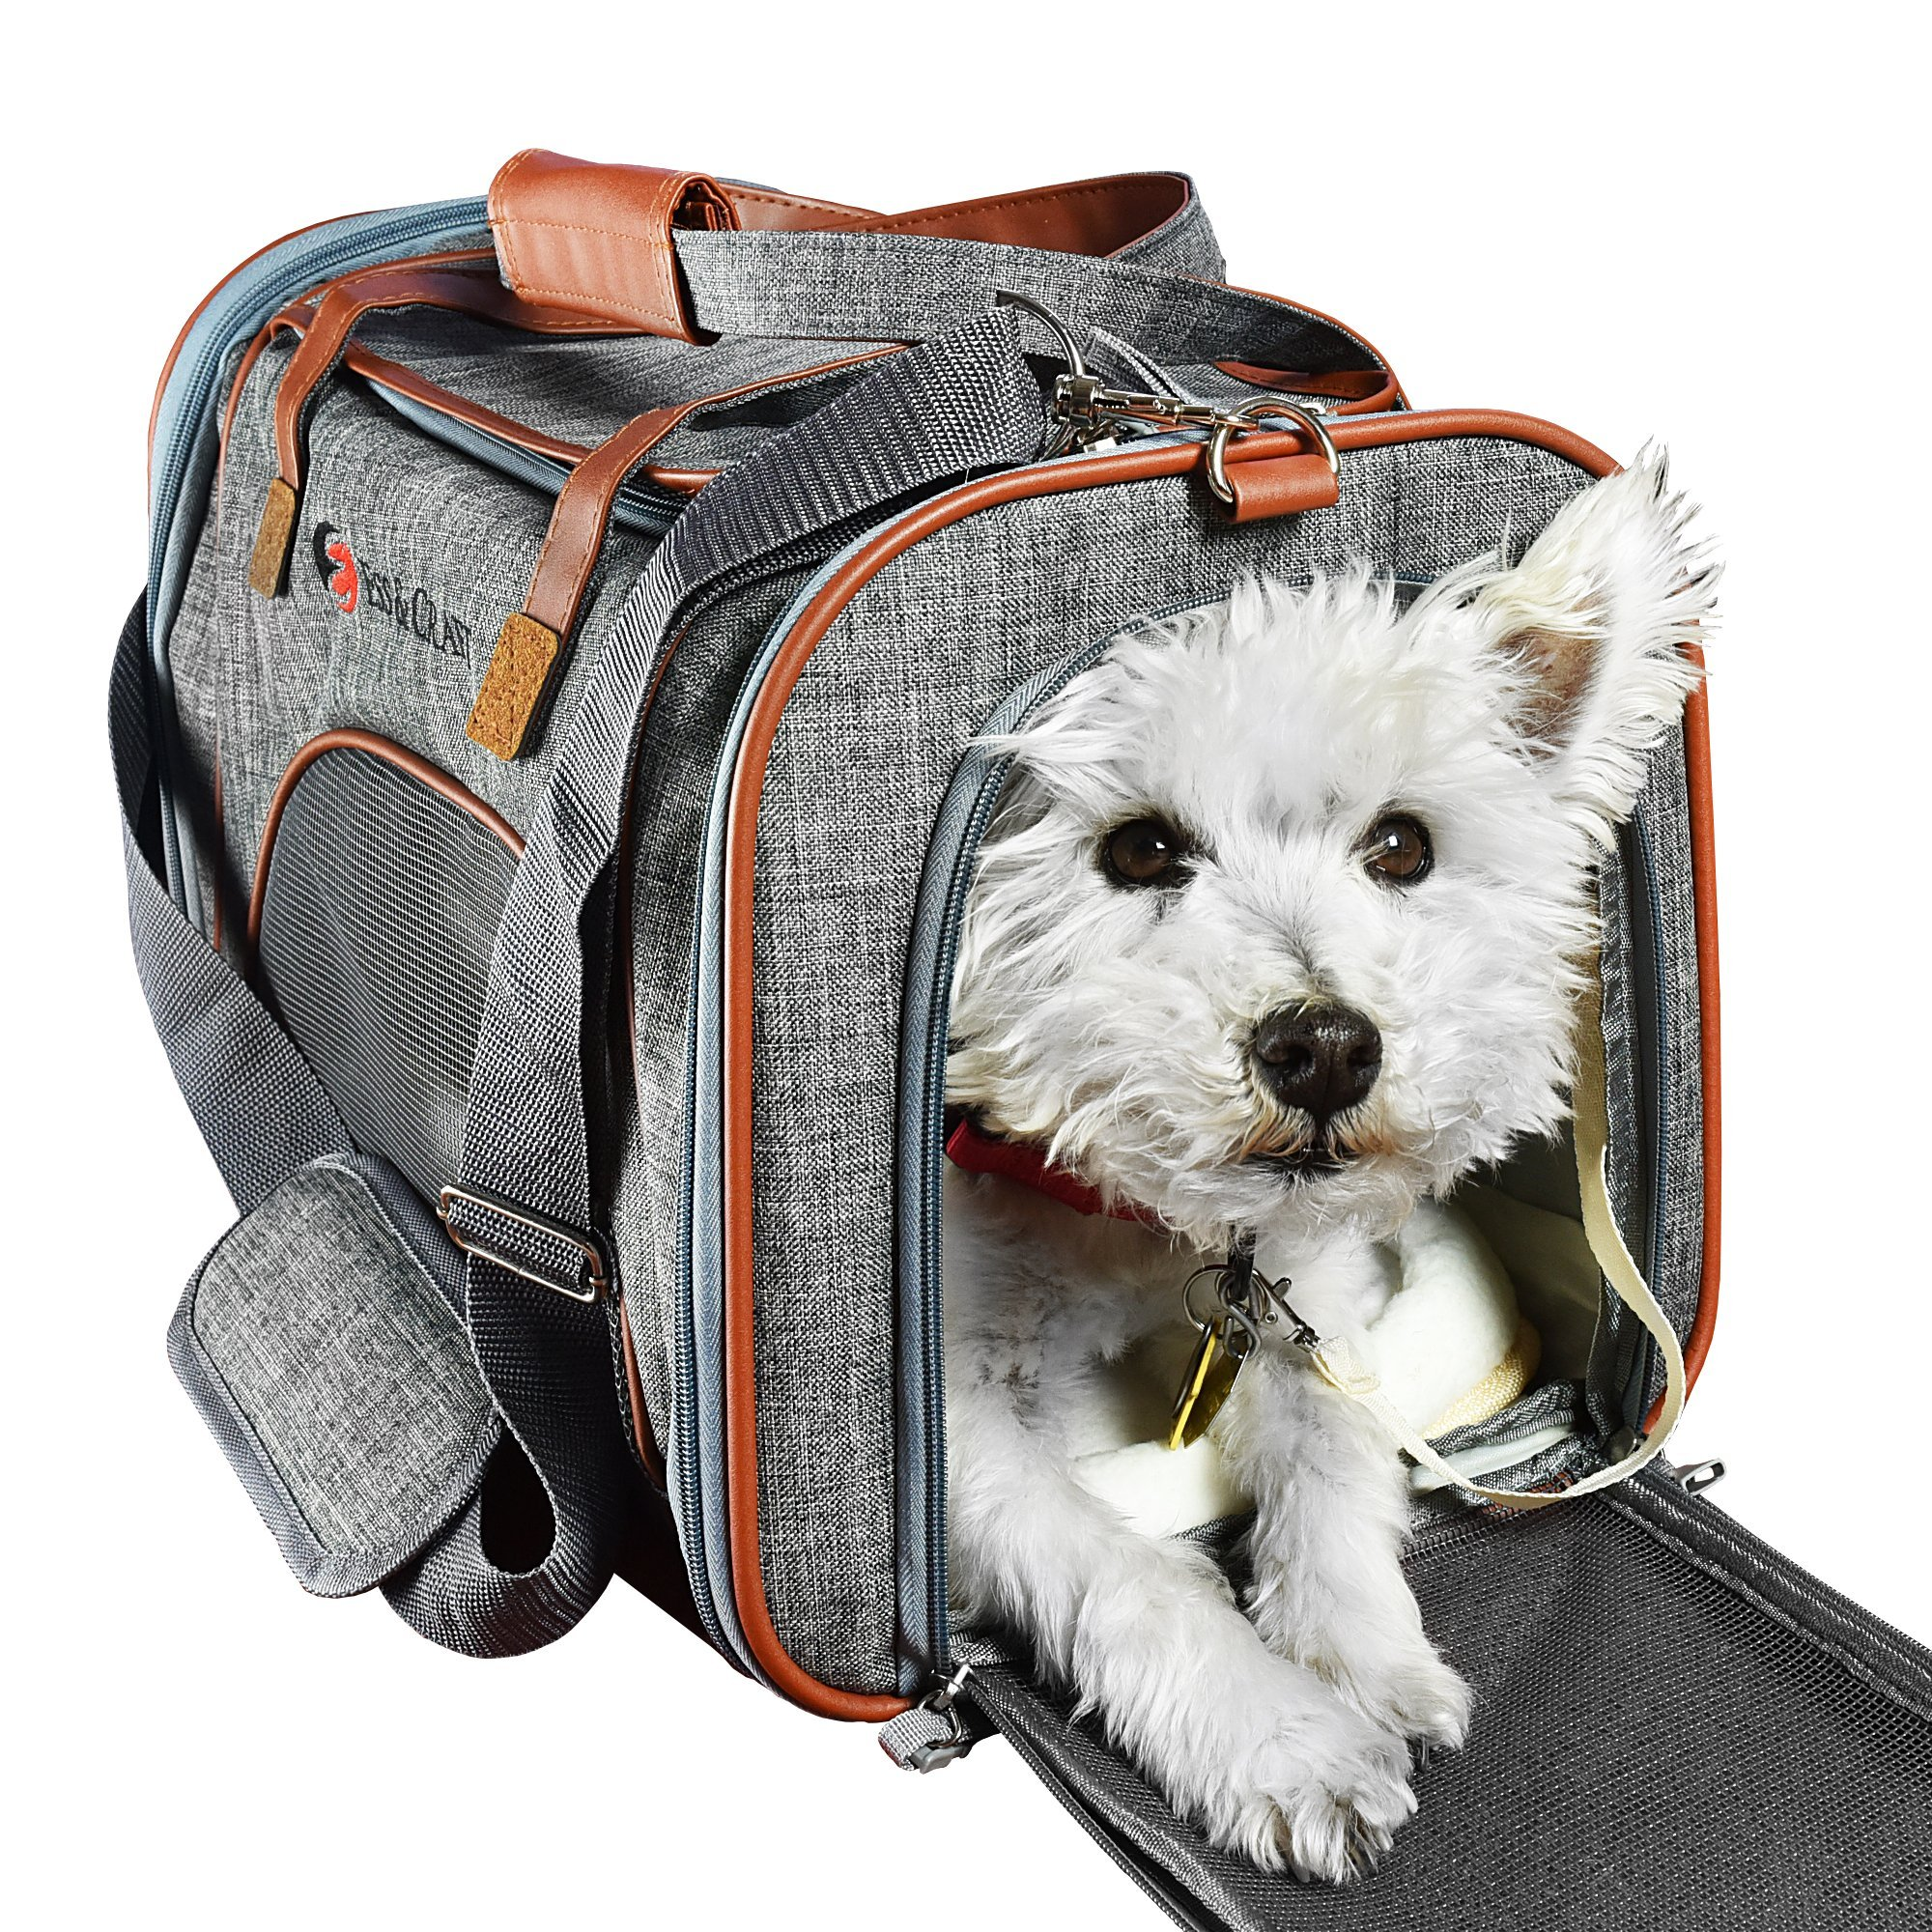 E Ess & Craft Pet Carrier for Small Pets | Approved by Most Airlines | | Side Loaded Travel Bag with Sturdy Bottom & Fleece Cushion | Ventilated Pouch with Faux Leather Top Handle & Zipper Locks | by E Ess & Craft